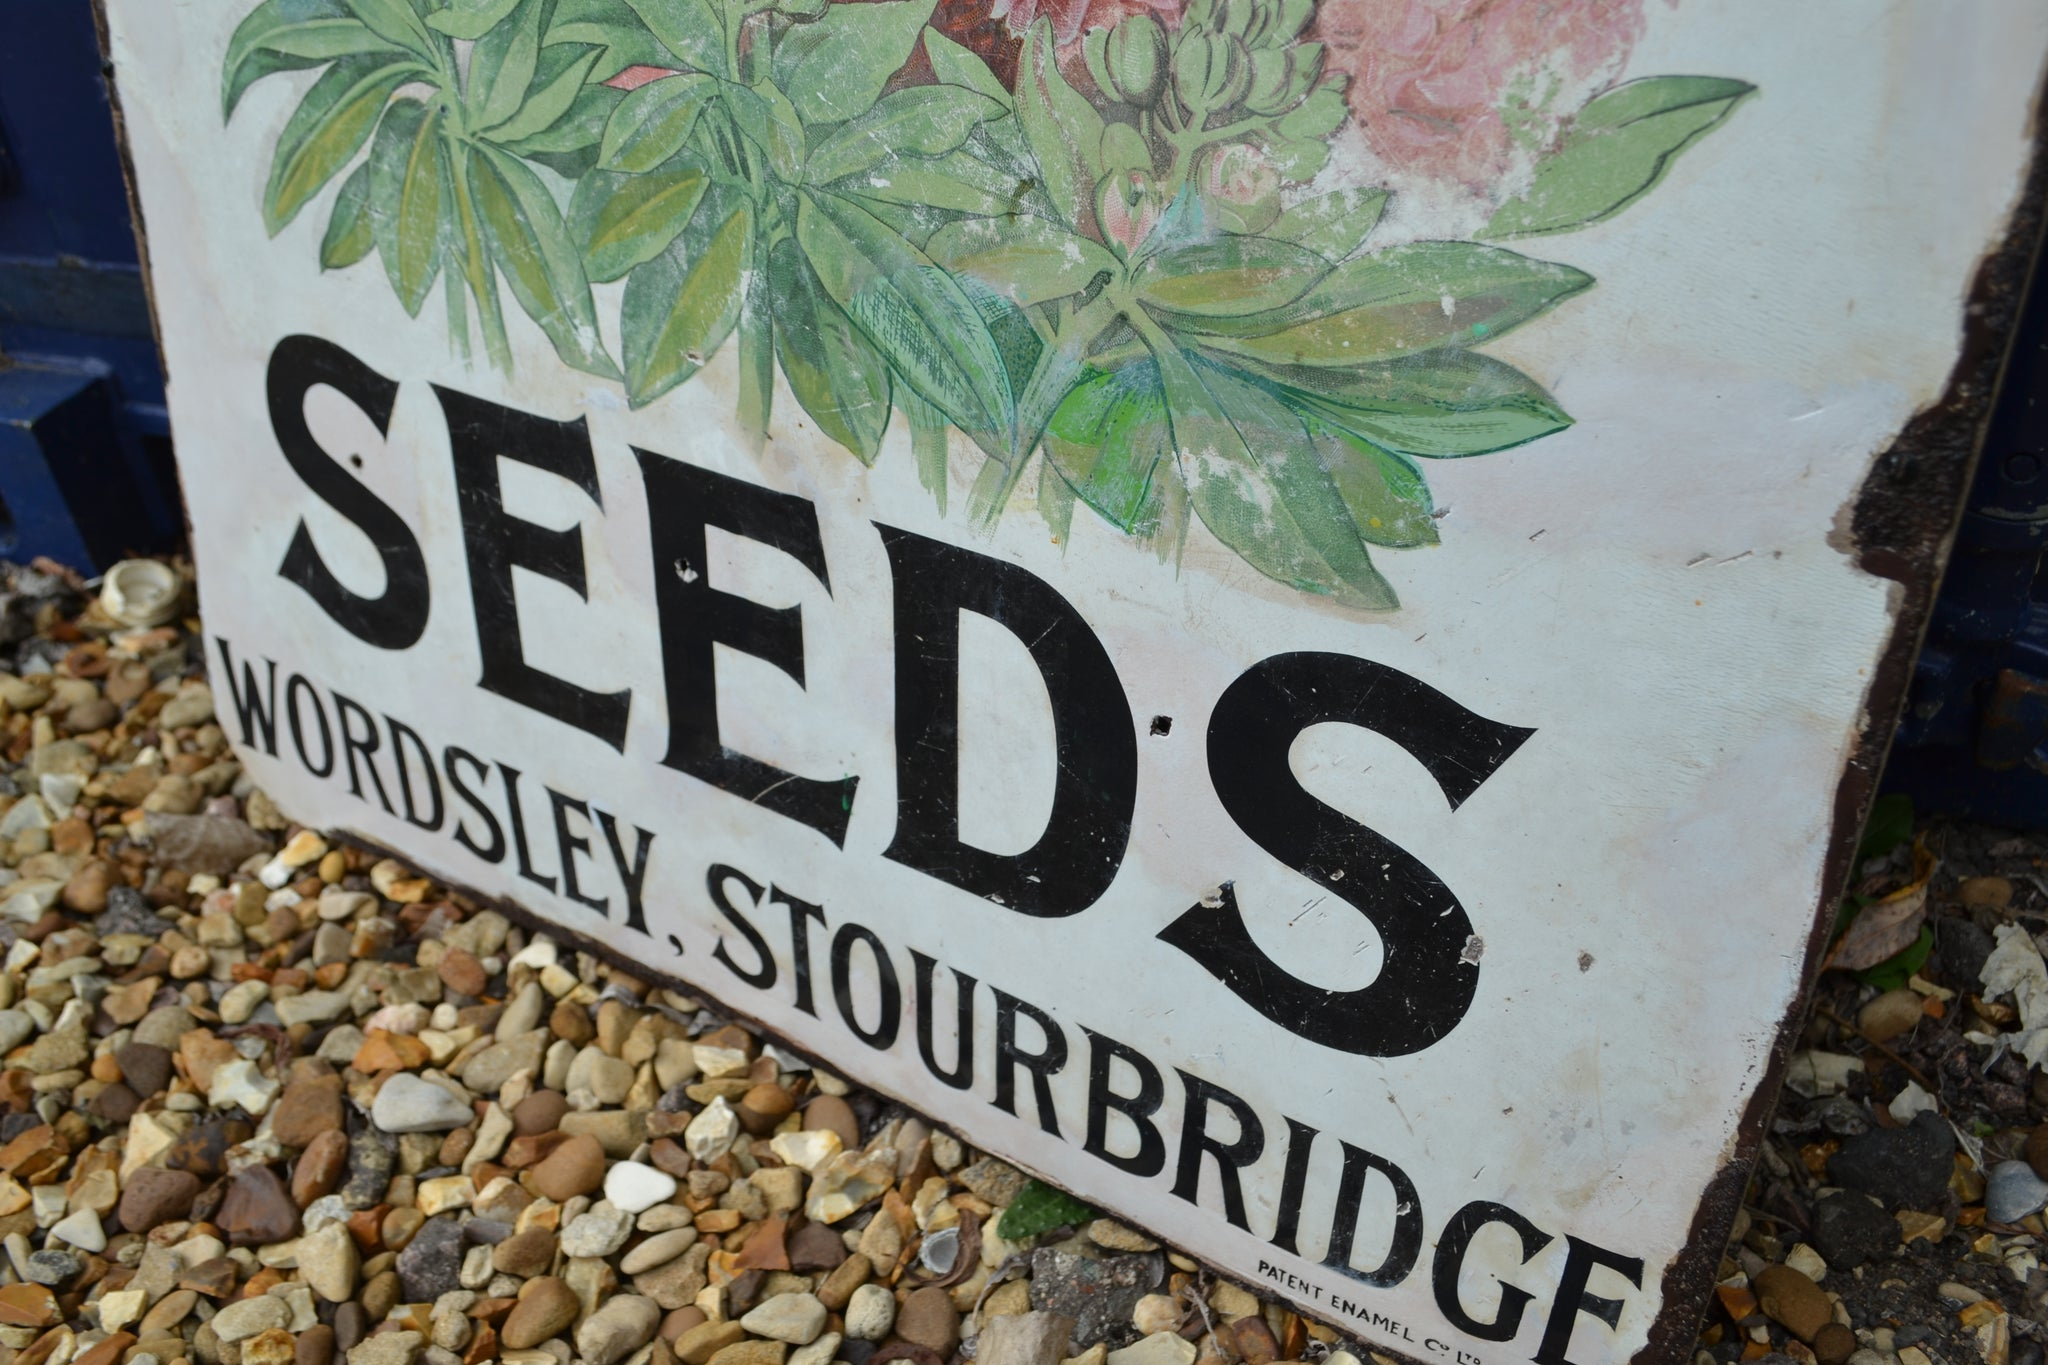 A Webbs' seeds Stocks enamel sign